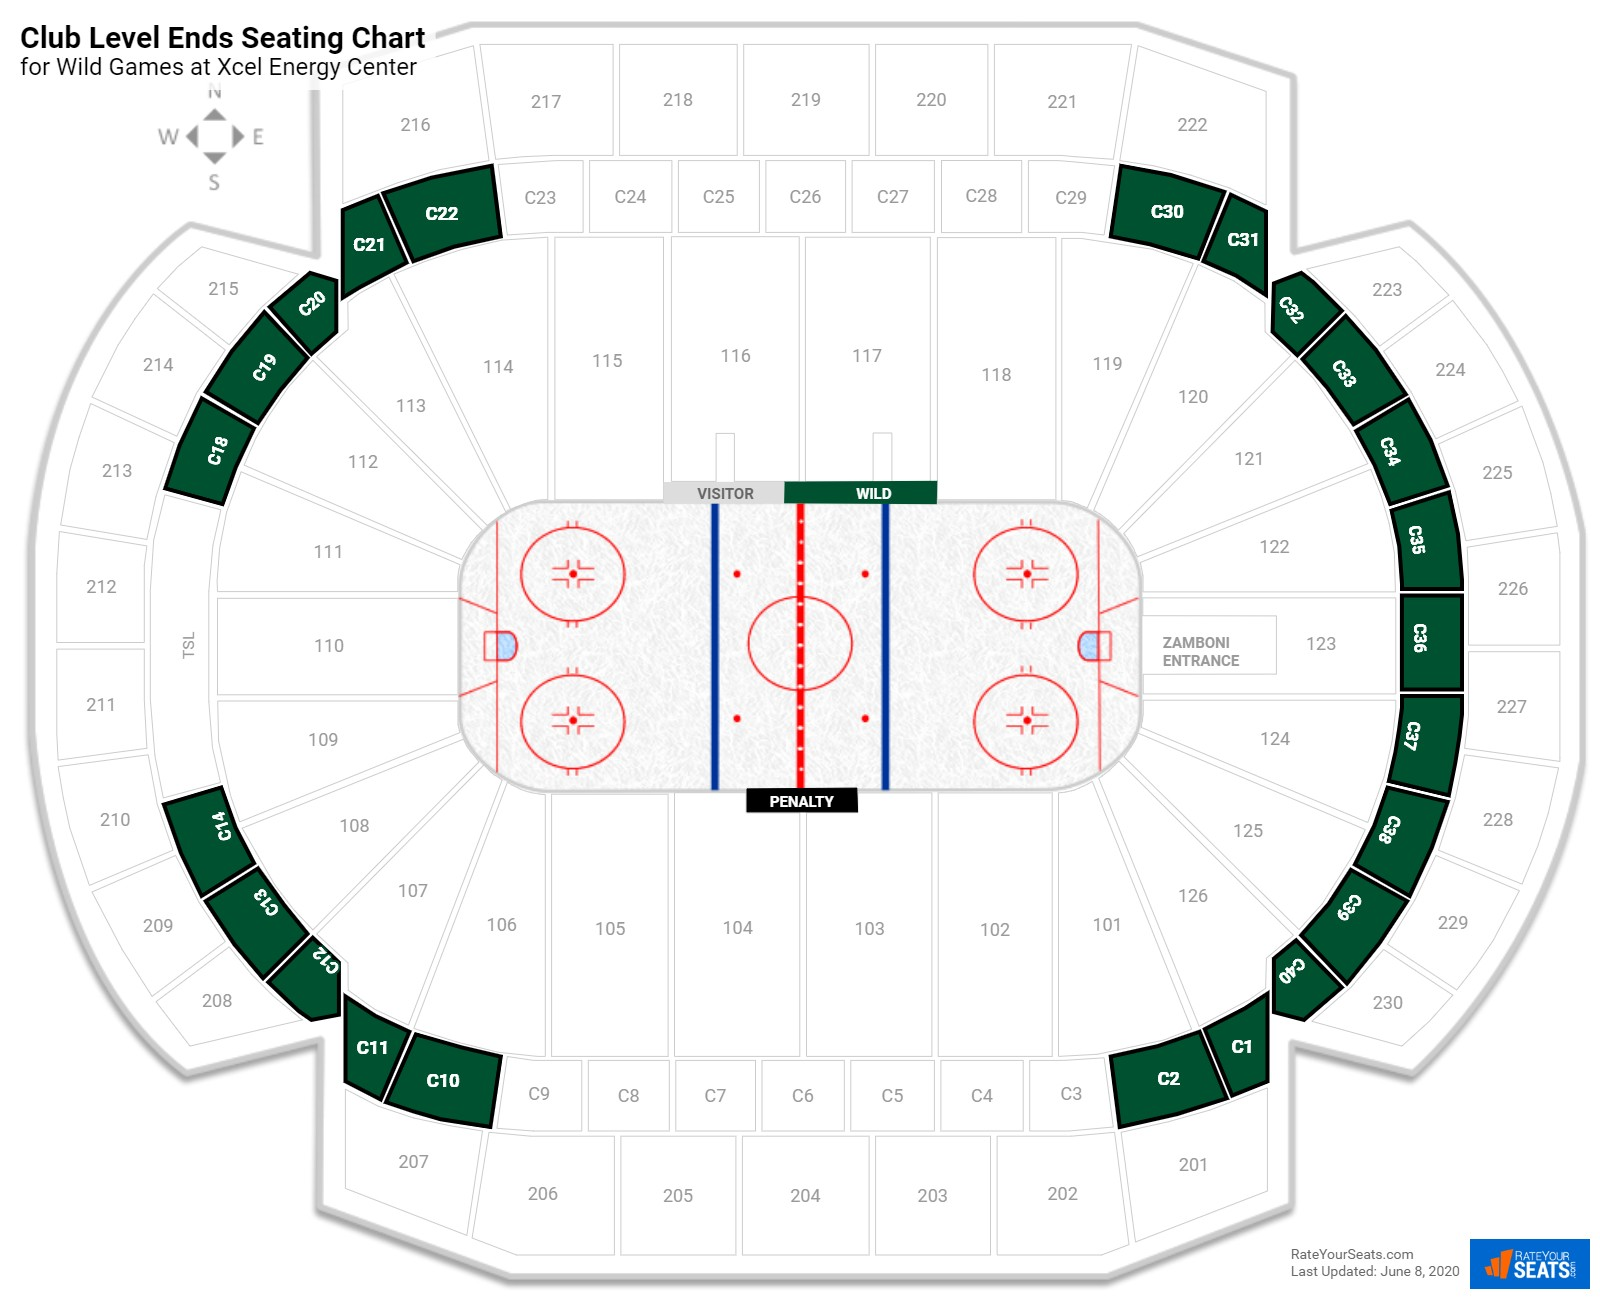 Xcel Energy Center Club Level End seating chart